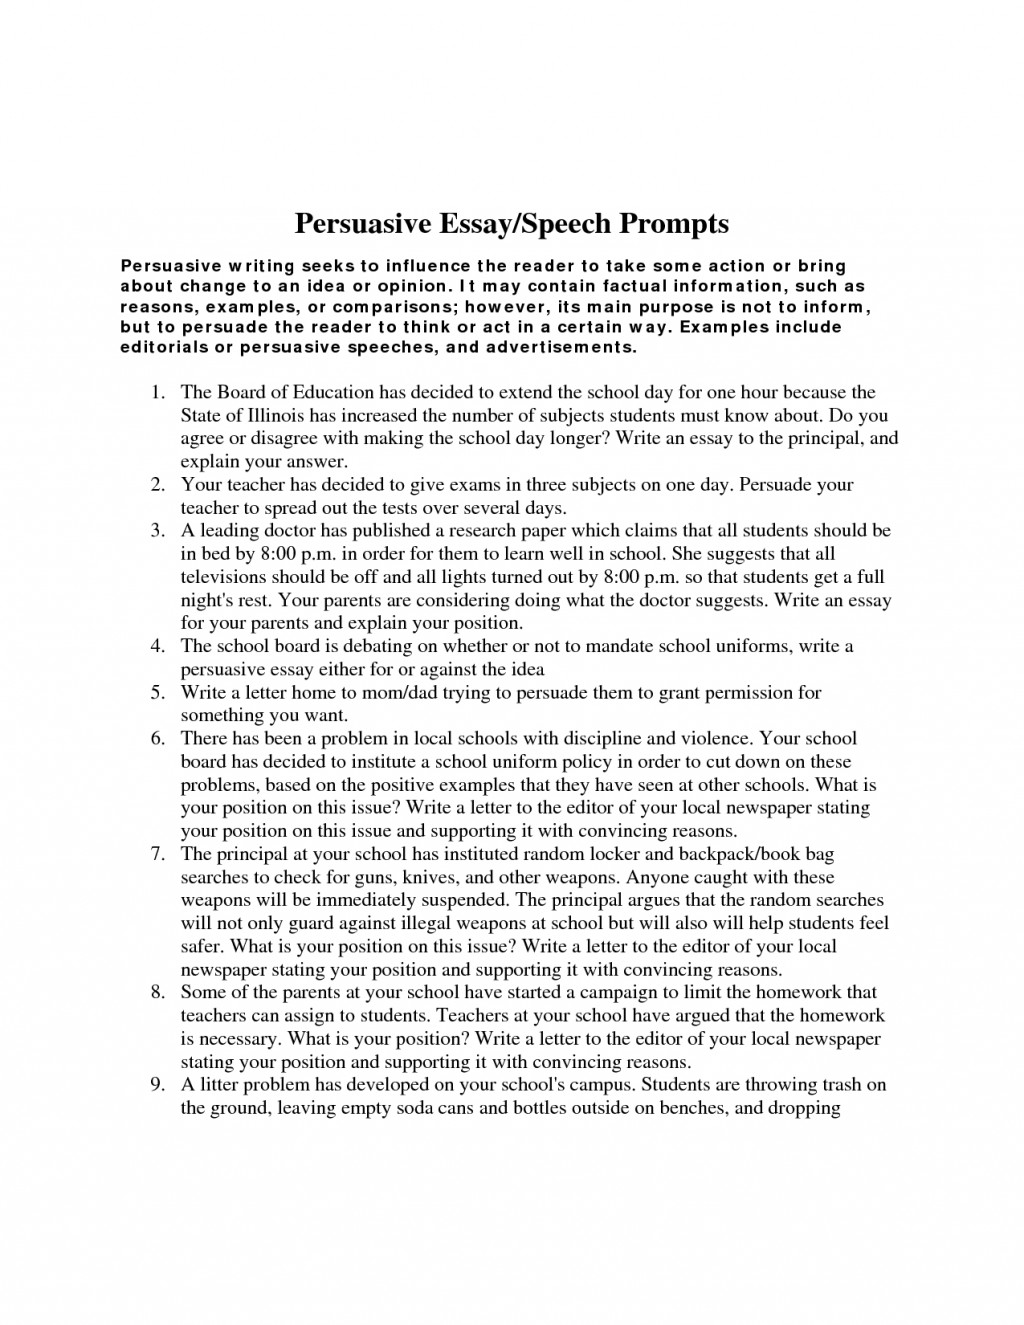 012 Essay Example Persuasive Prompts Informative Remarkable Topics Expository For Secondary School 4th Grade 5th Large